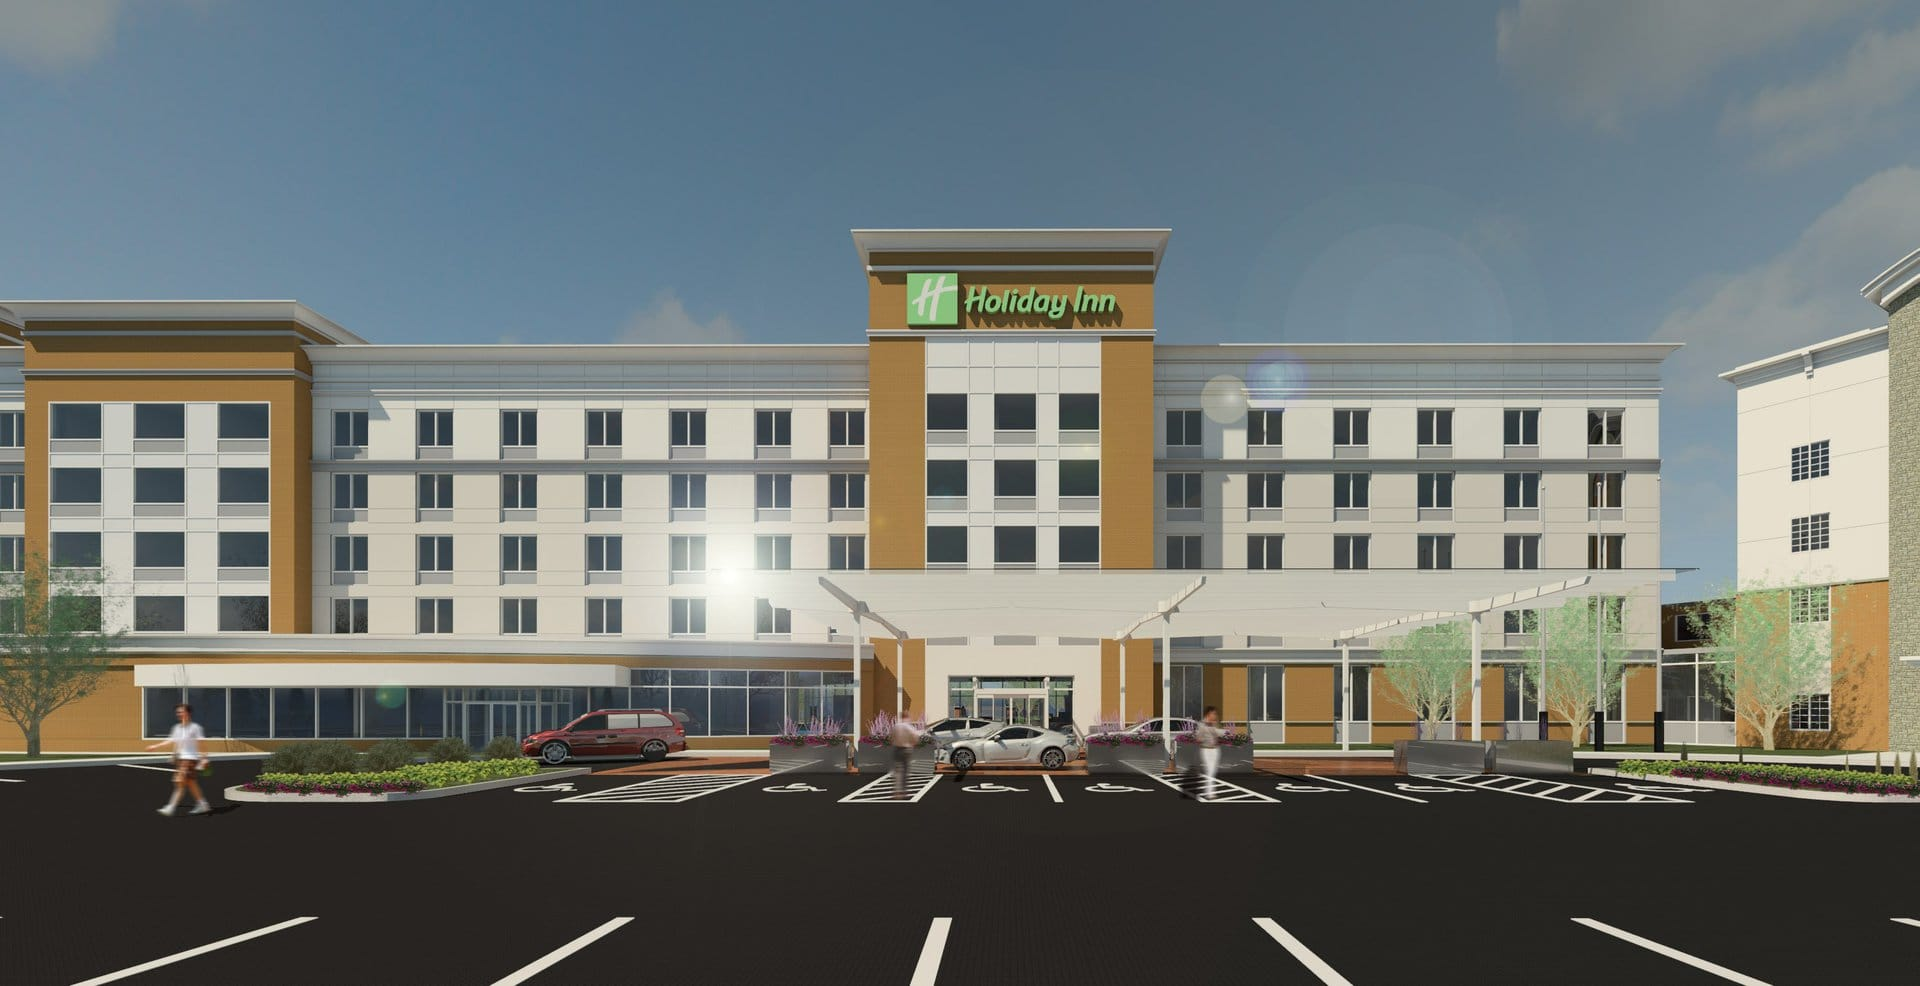 Holiday Inn Rendering